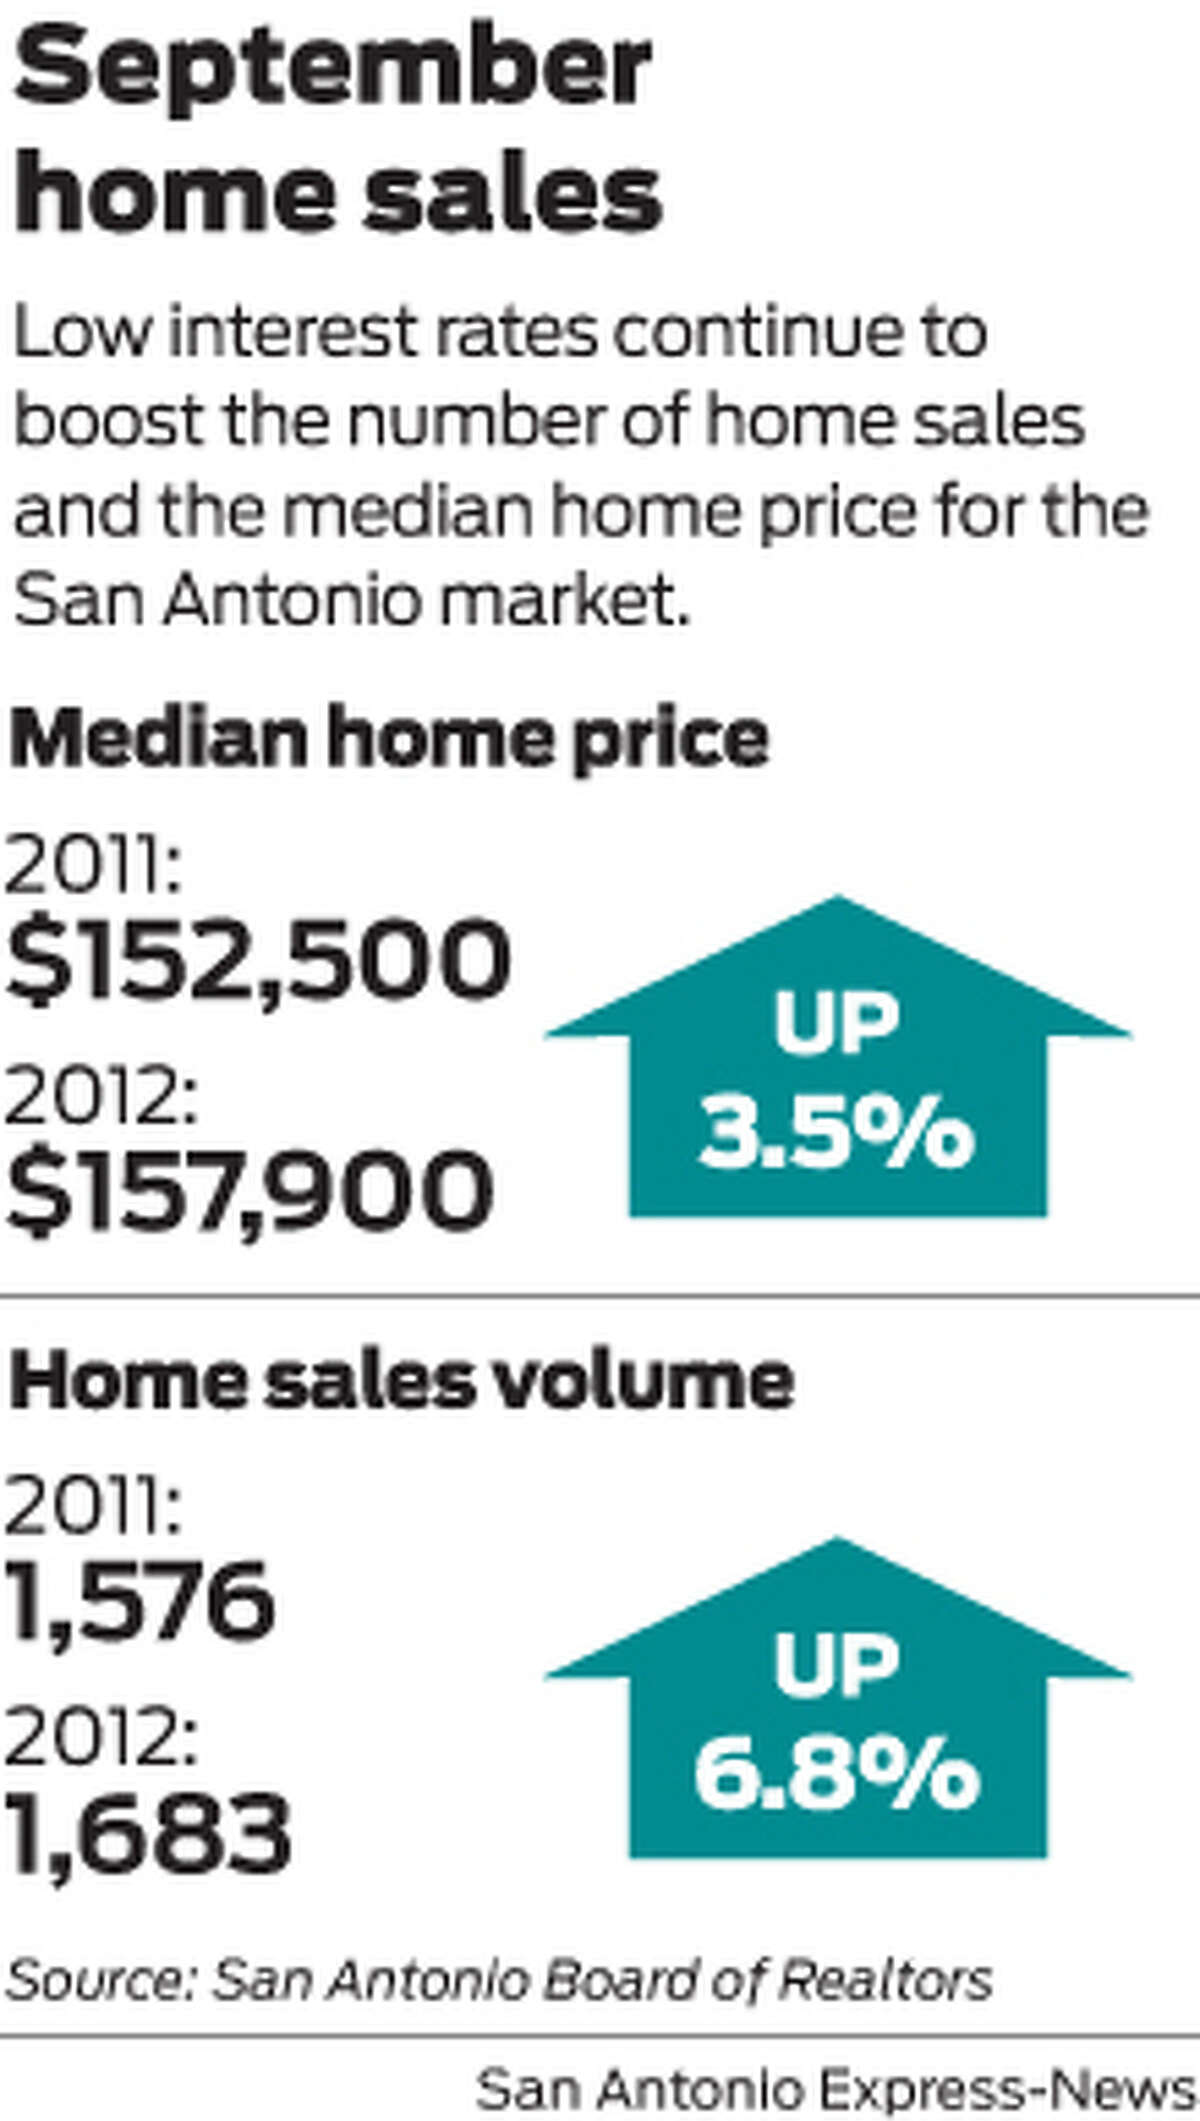 Low interest rates continue to boost the number of home sales and the median home price for the San Antonio market.